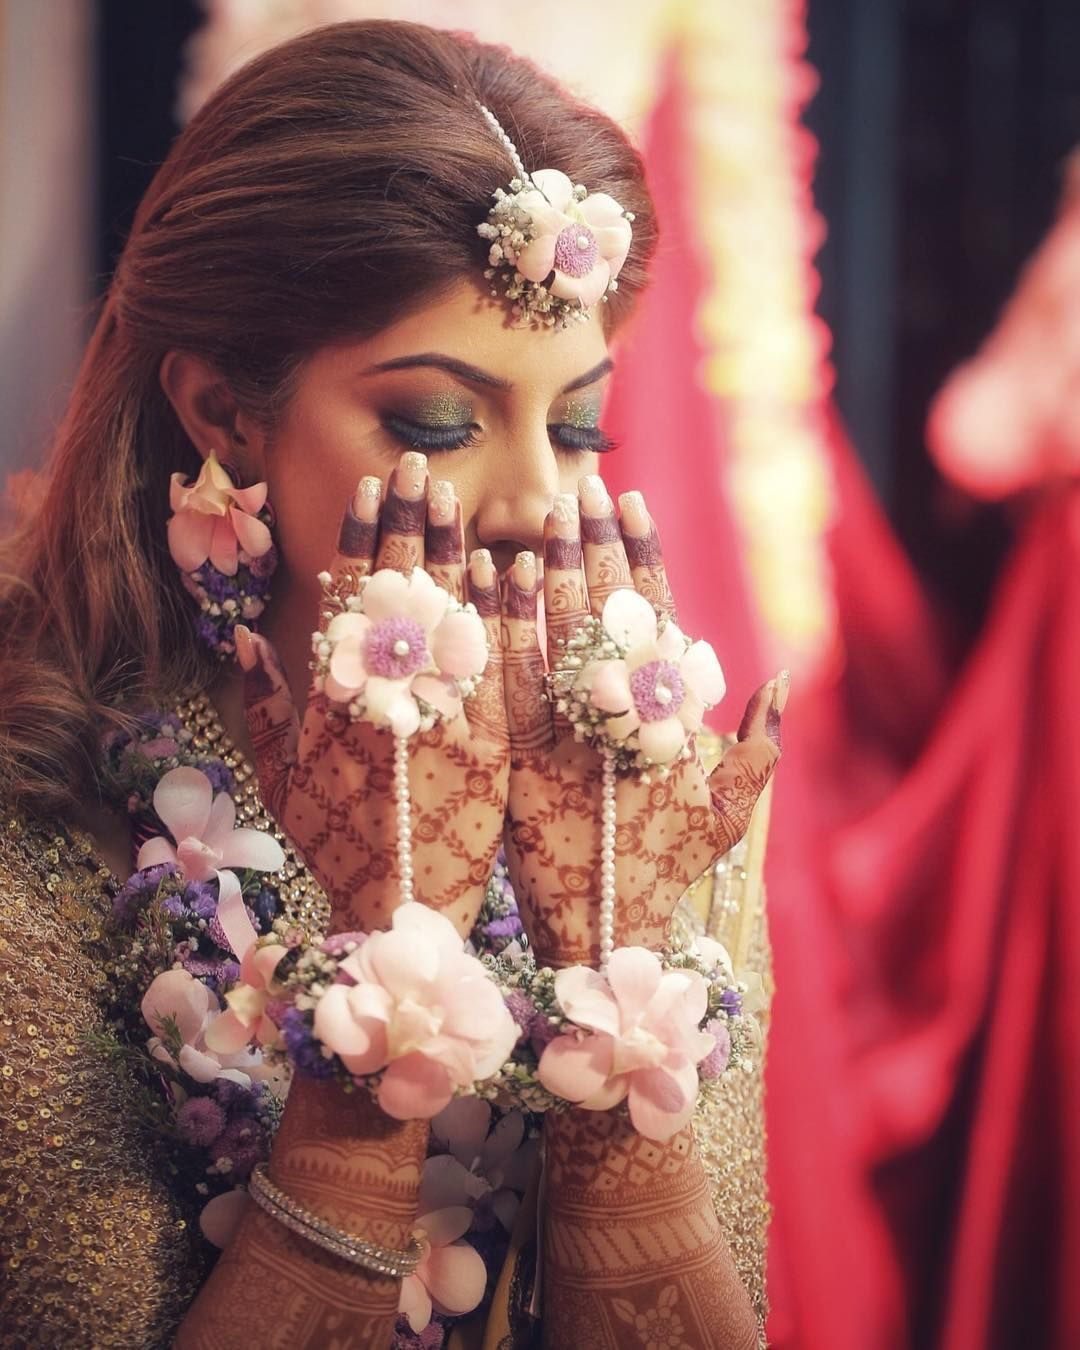 40 Stunning Floral Jewellery Designs For Every Bride To Be Wedding Flower Jewelry Fresh Flower Jewelry Winter Bridal Jewelry